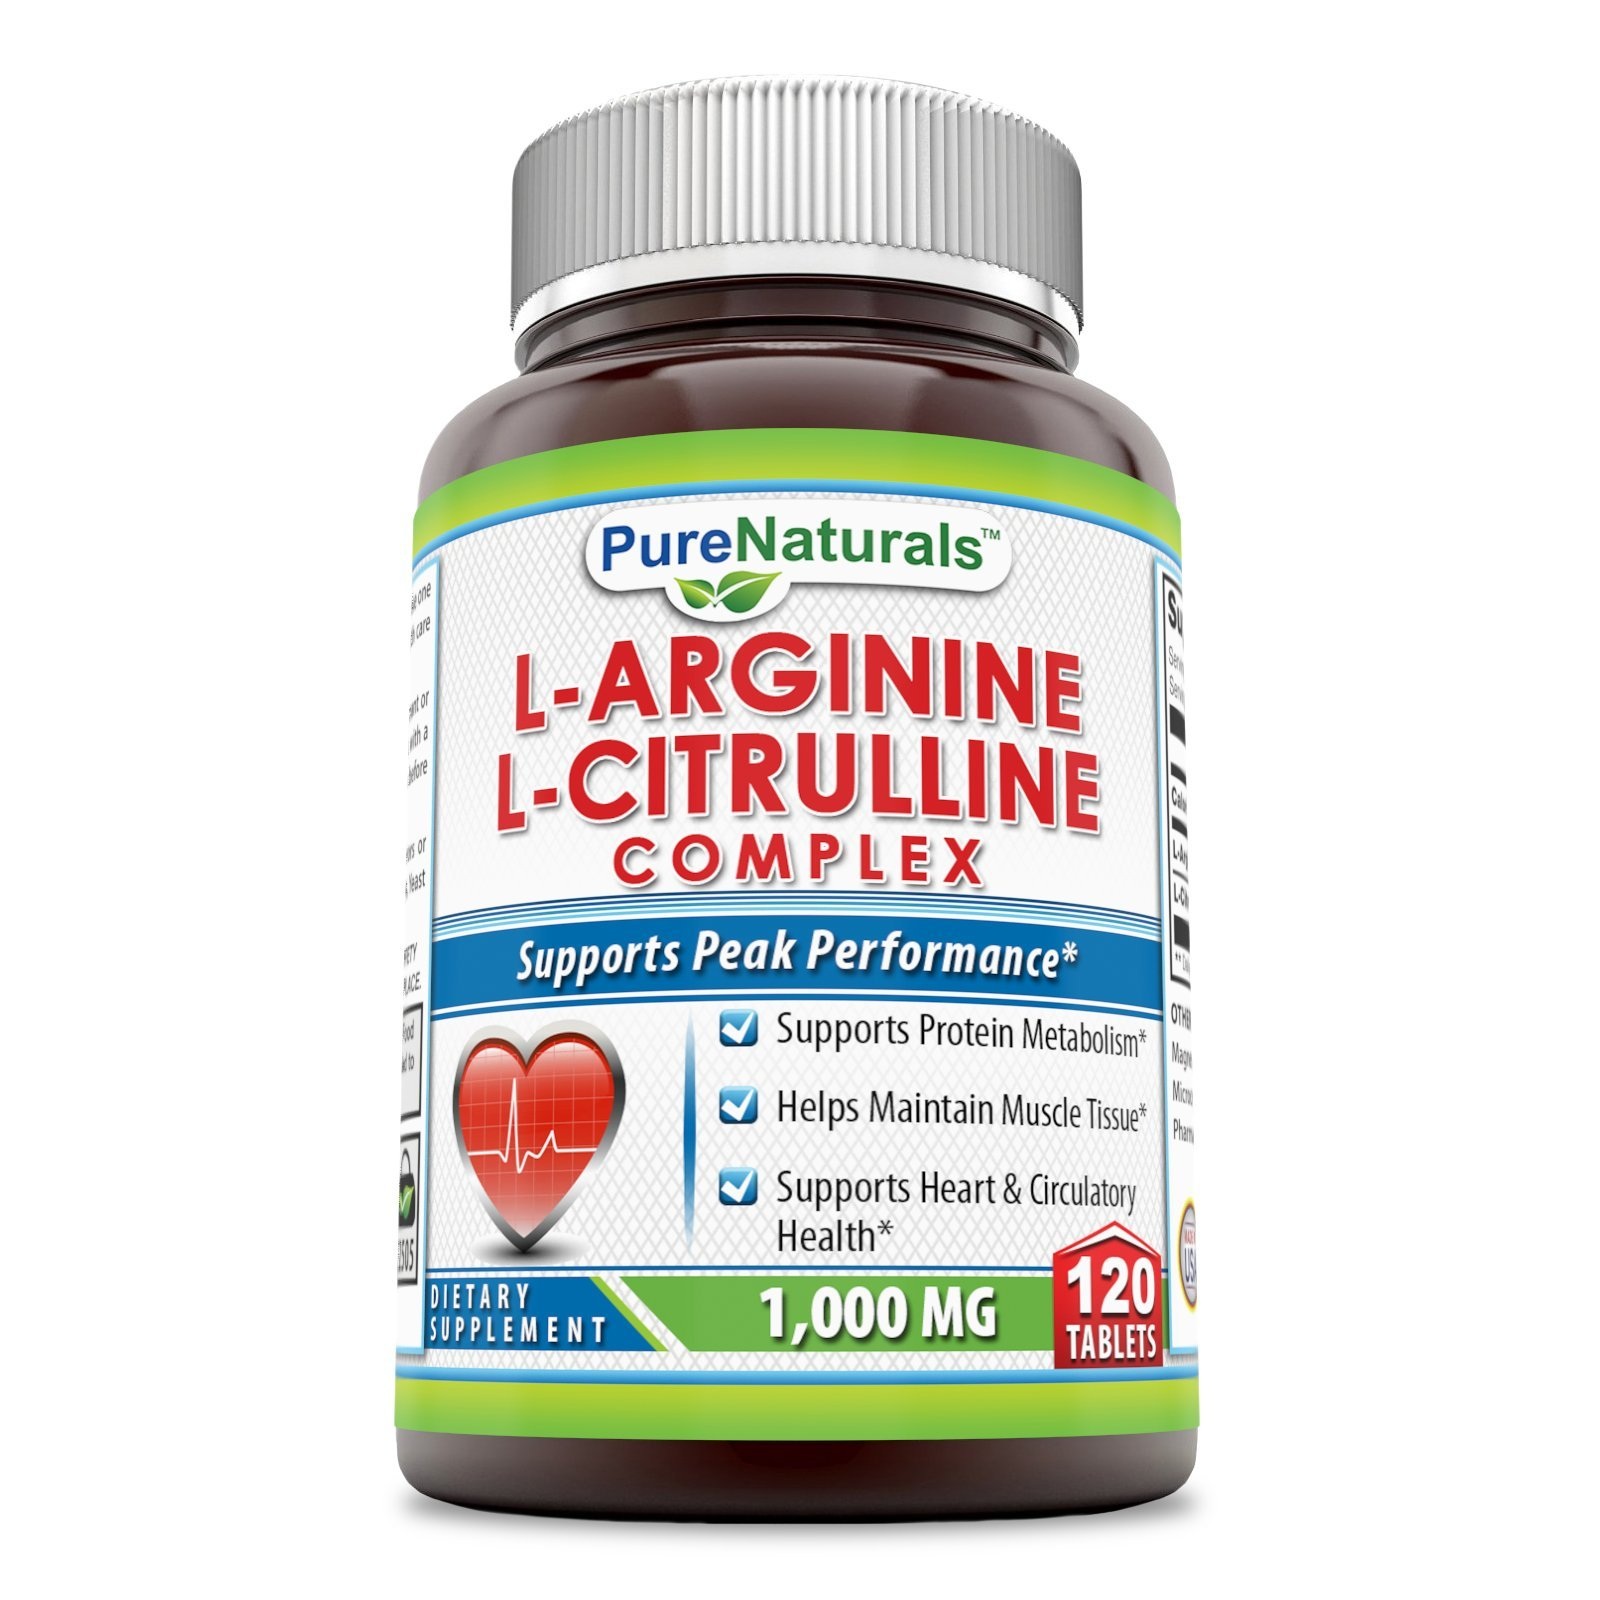 Pure Naturals L-Arginine/L-Citrulline Complex (1000 Mg - 120 Tablets) * Combines Two Amino Acids with Potential Health Benefits * Supports Energy Production * Aids to Improve Athletic Performance an by Pure Naturals